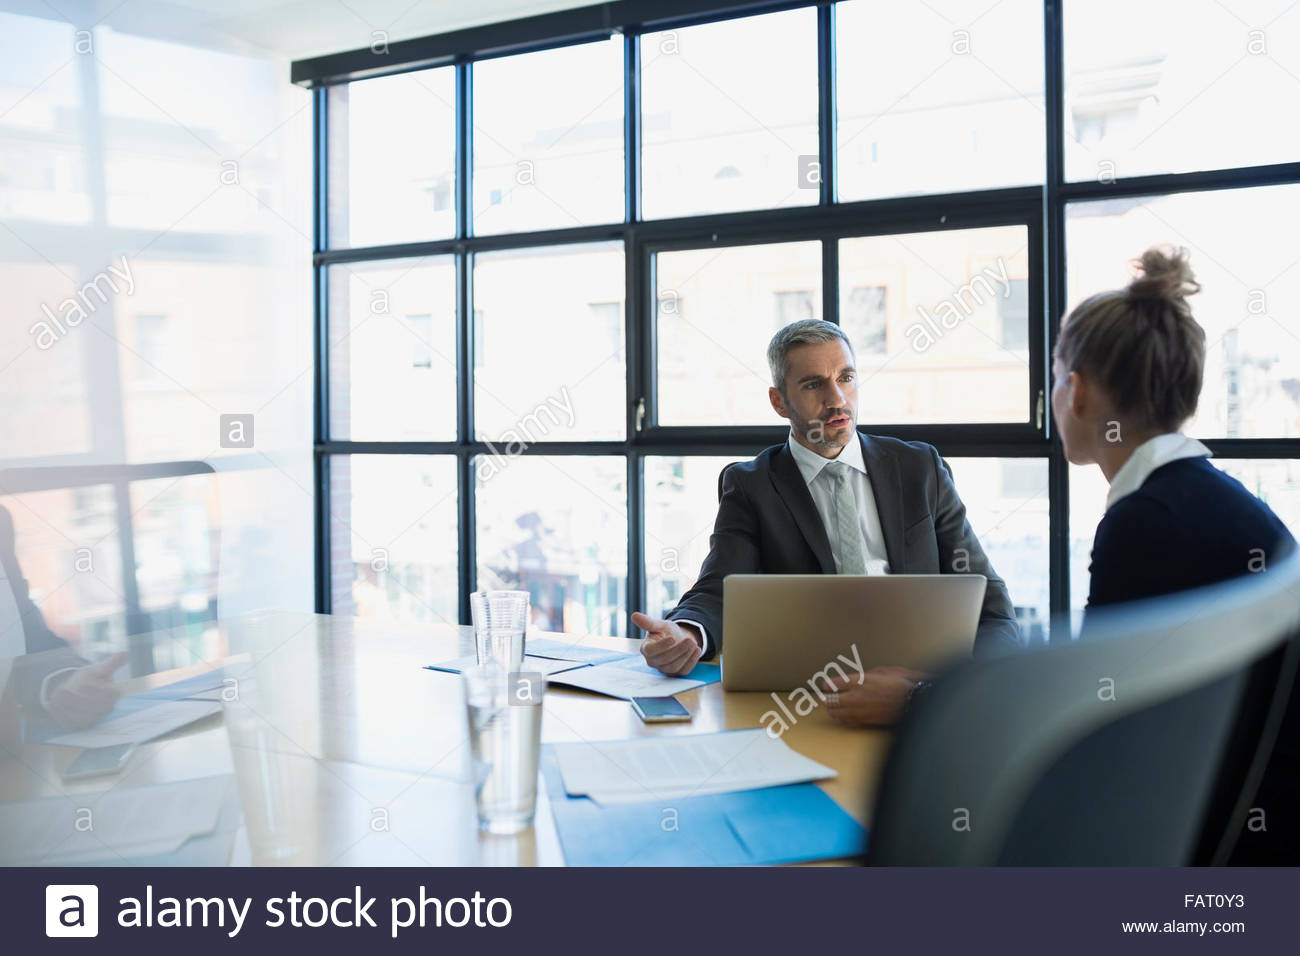 Business people talking at laptop in conference room - Stock Image